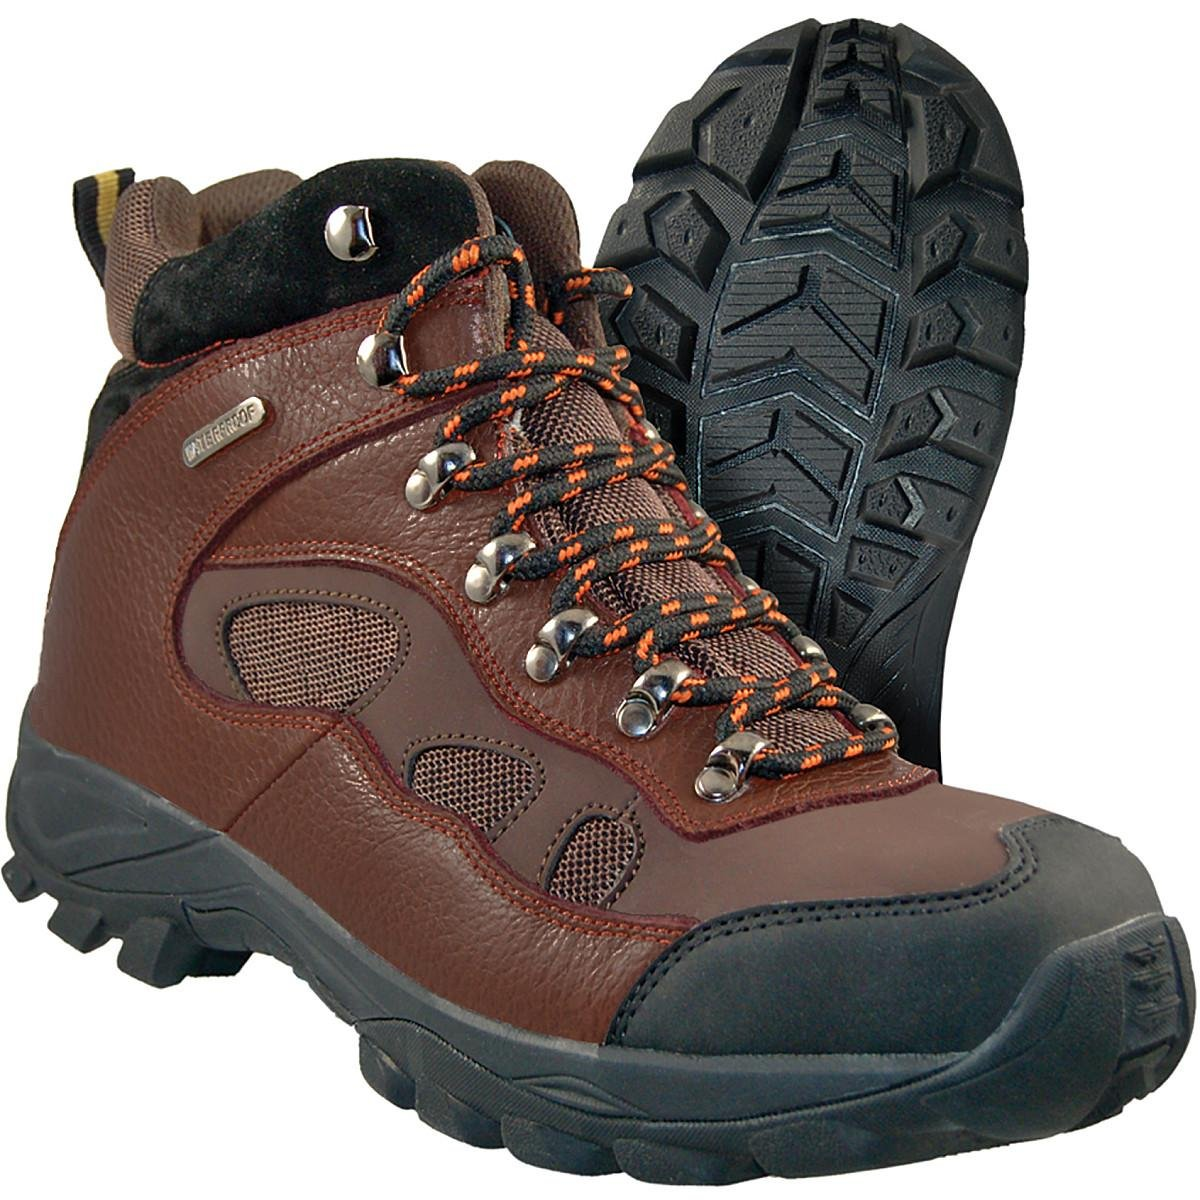 Itasca Men's Contractor II Toe Leather Work Fire and Safety Boot, Brown, 10 D US by Itasca